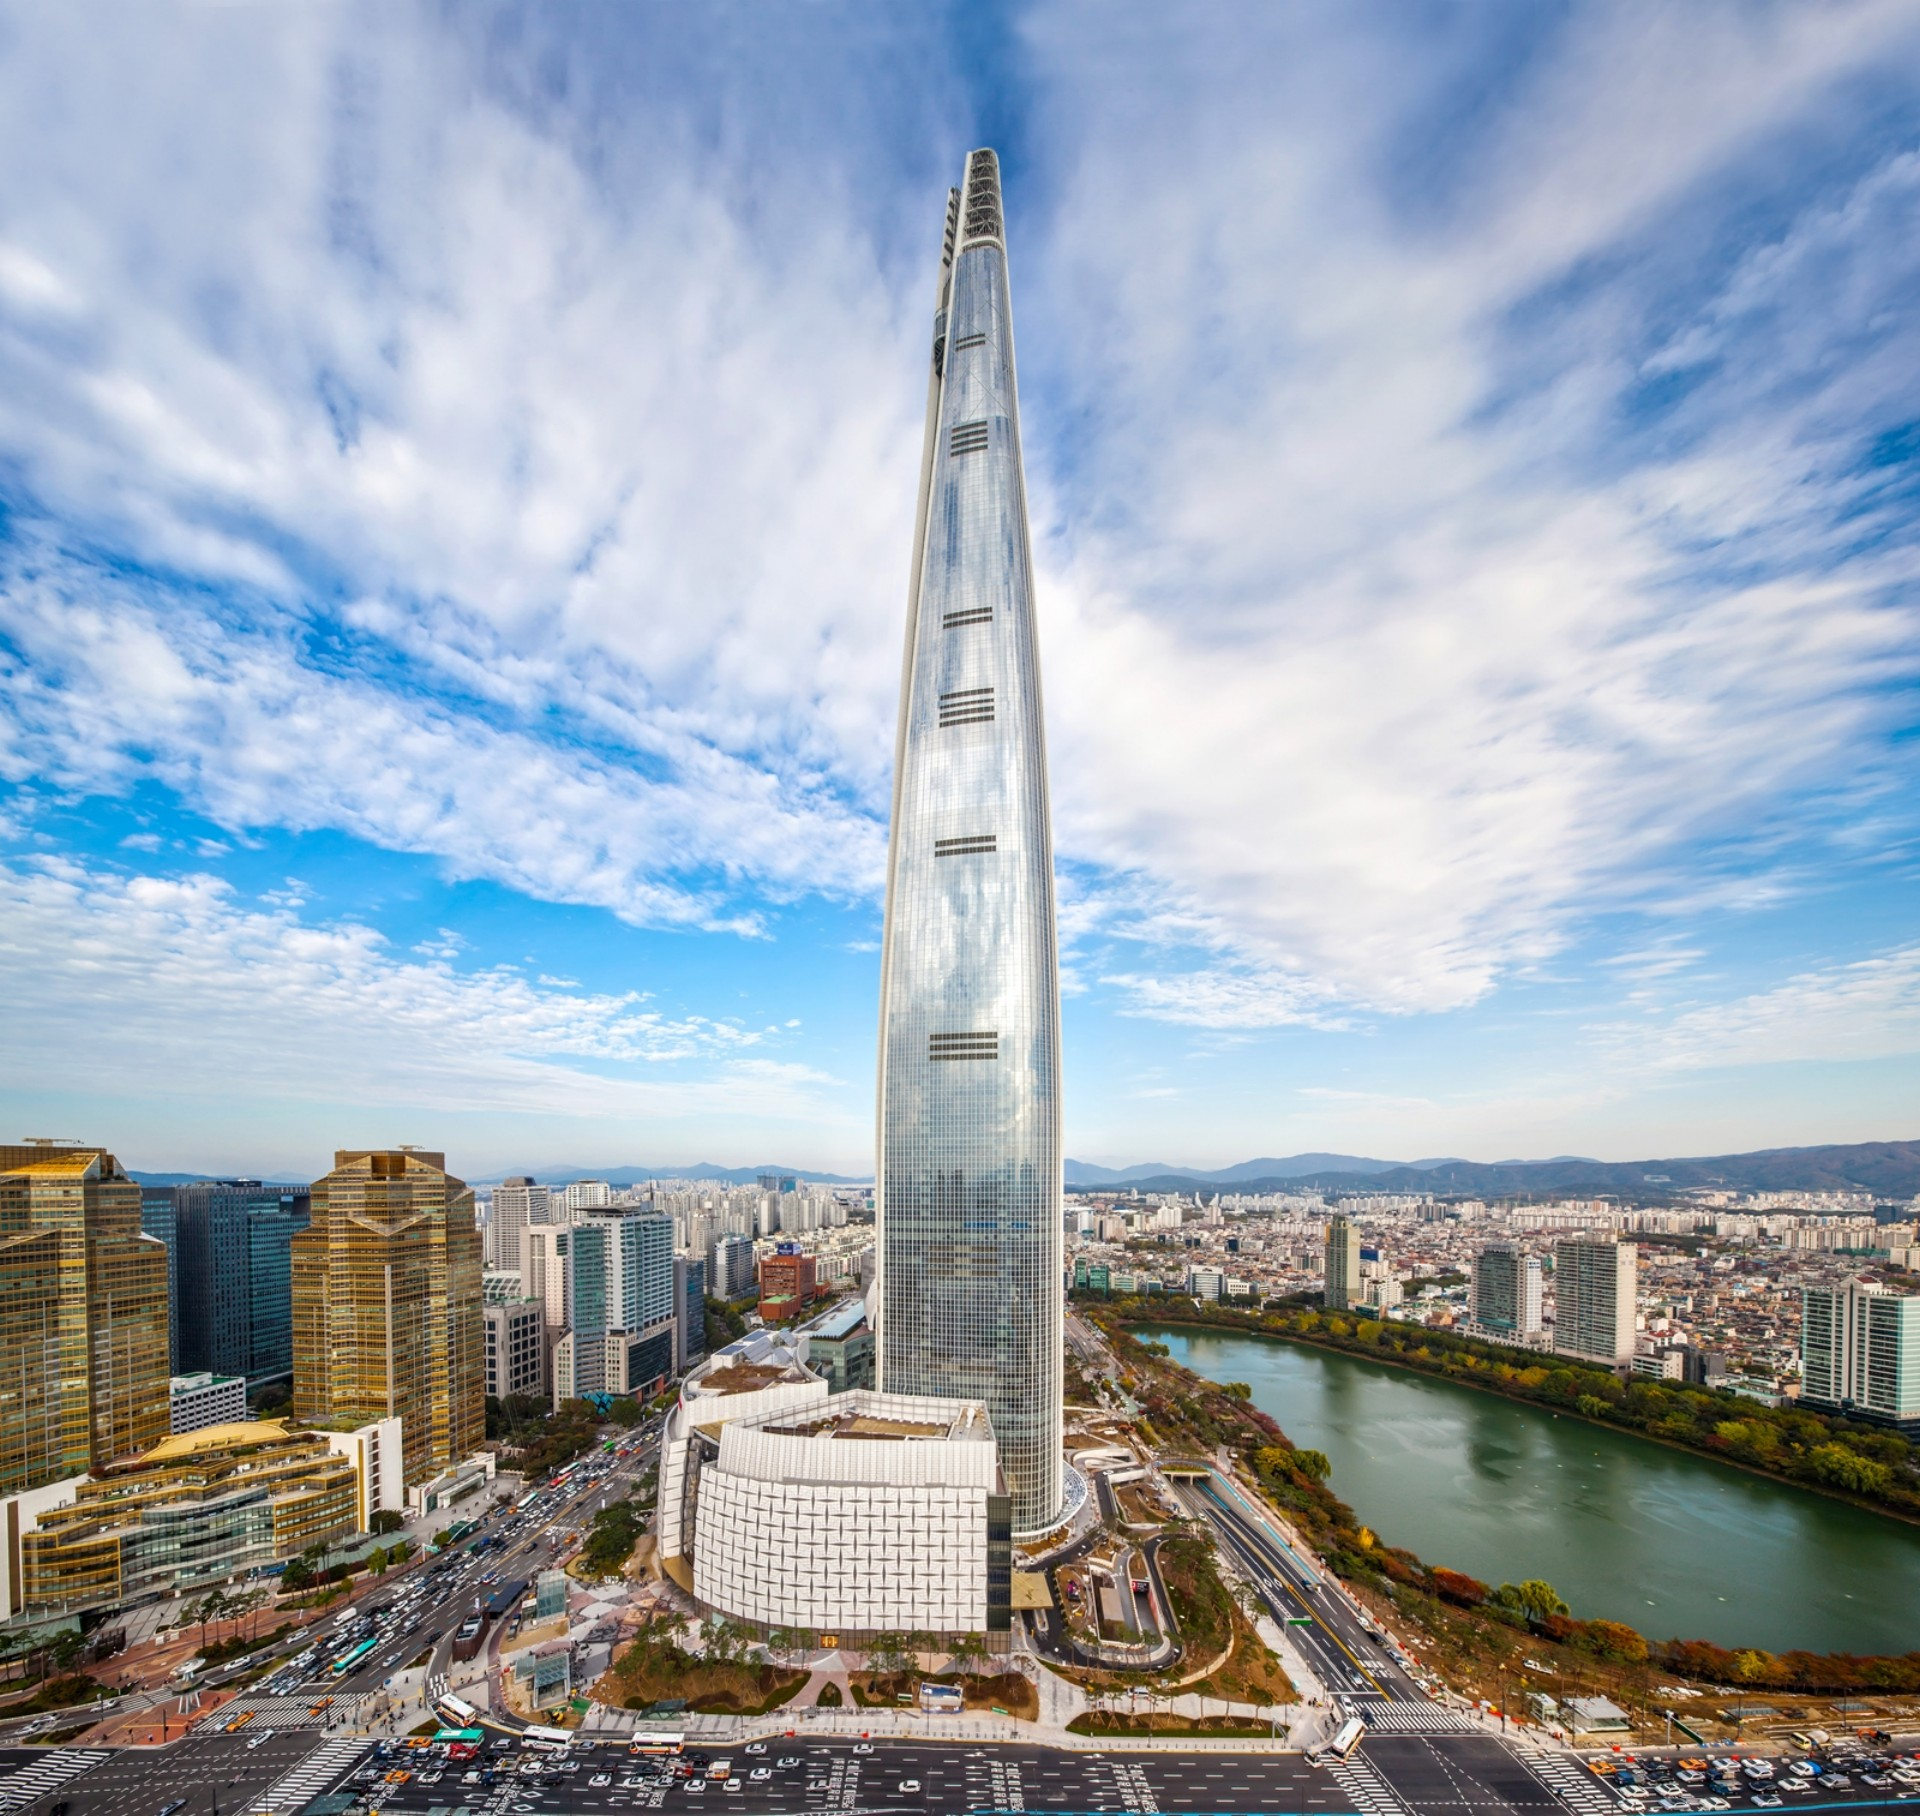 Lotte World Tower The World S Fifth Tallest Skyscraper Is